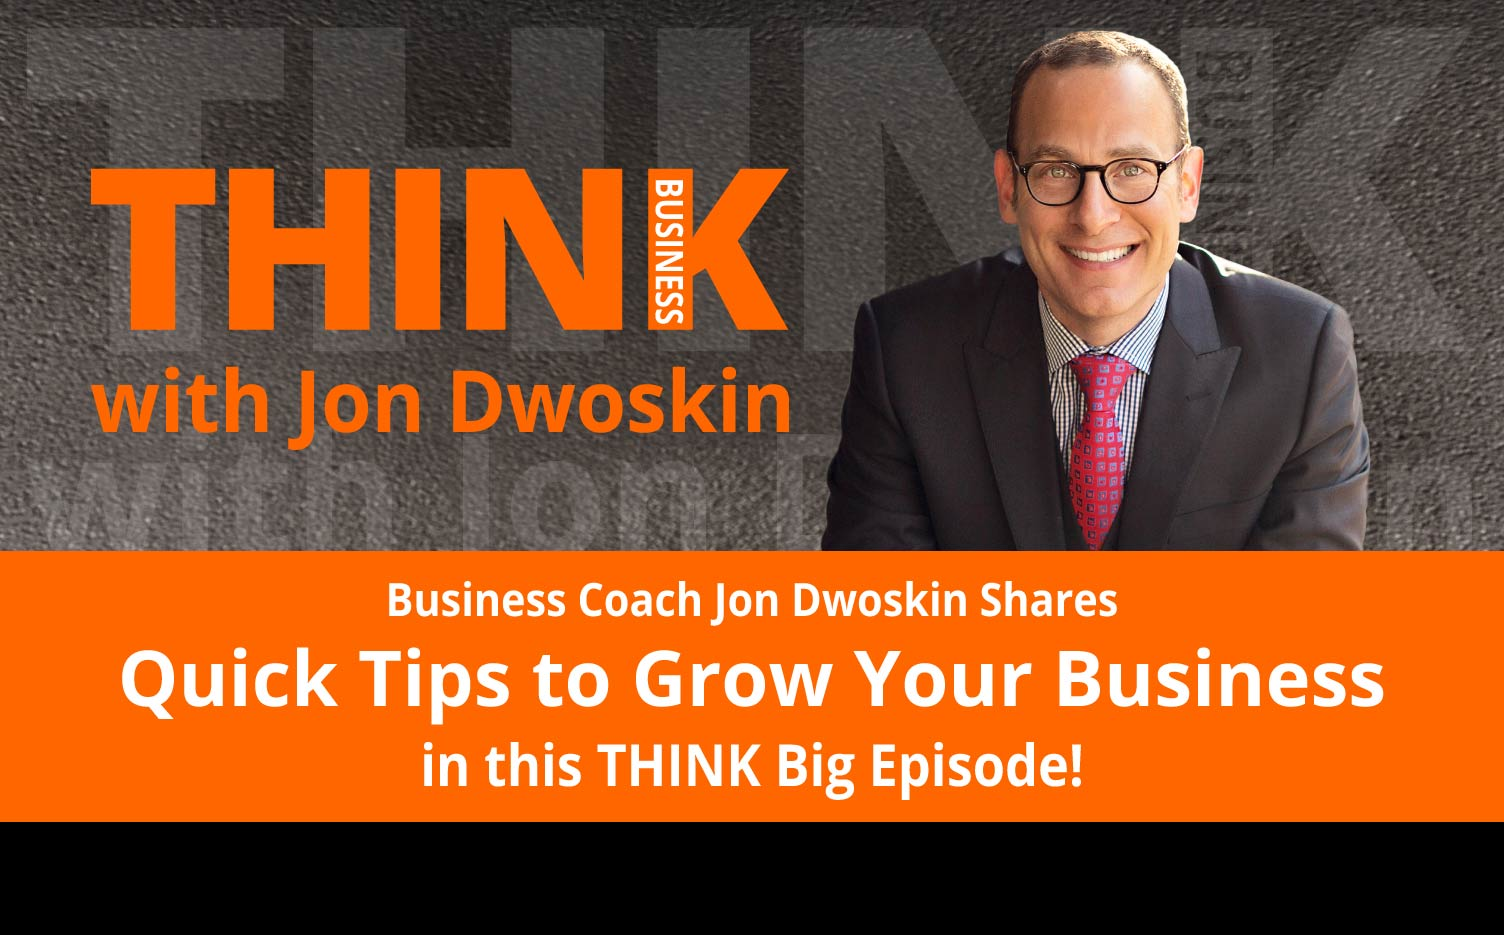 THINK Business Podcast: Today's Quick Tip: The Importance of Mentorship